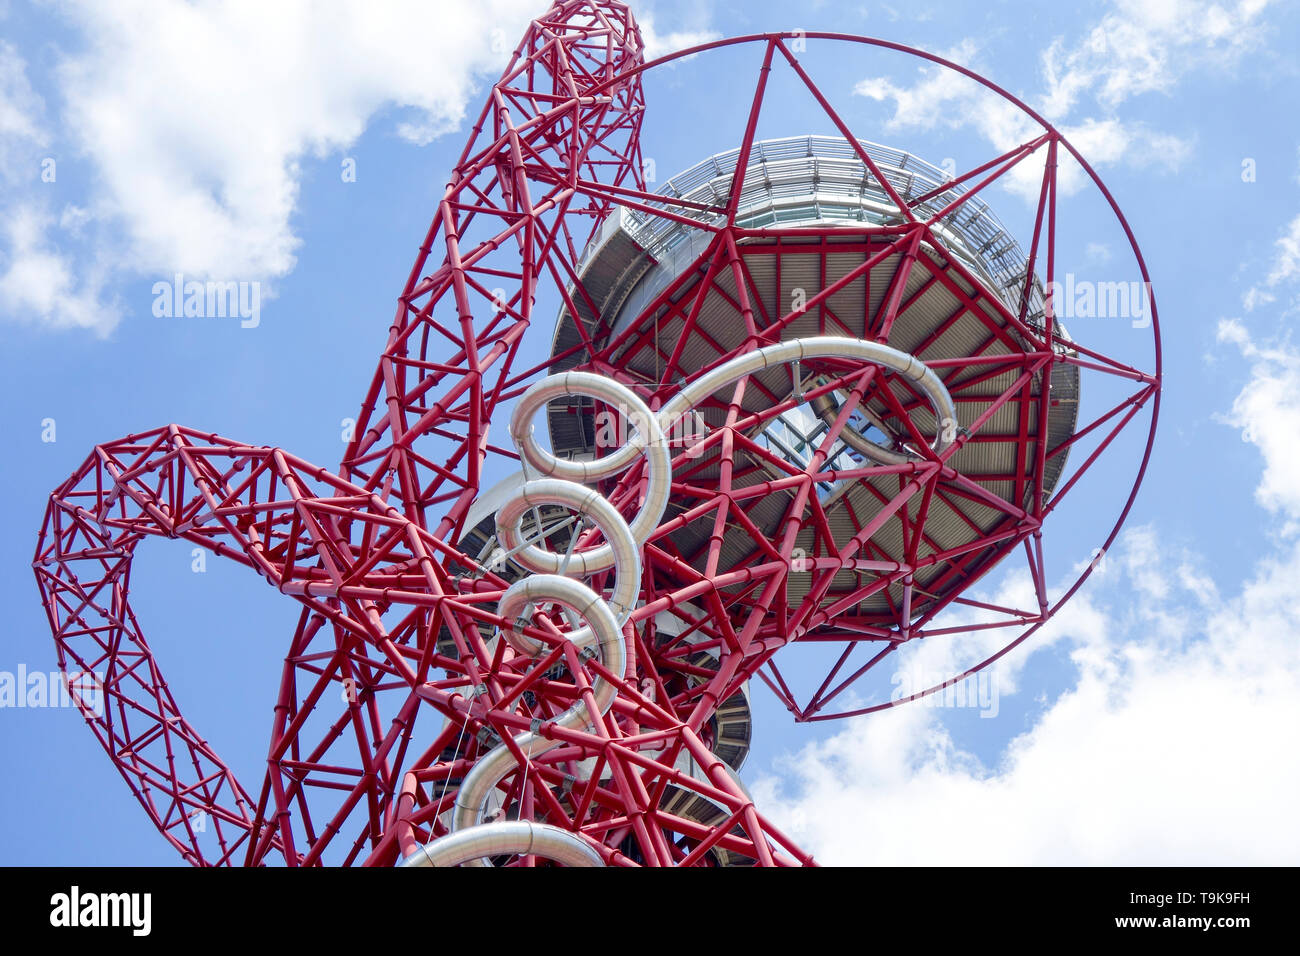 The 114.5m tall ArcelorMittal Orbit observation tower in the Queen Elizabeth Olympic Park in London. UK's largest sculpture. Stock Photo